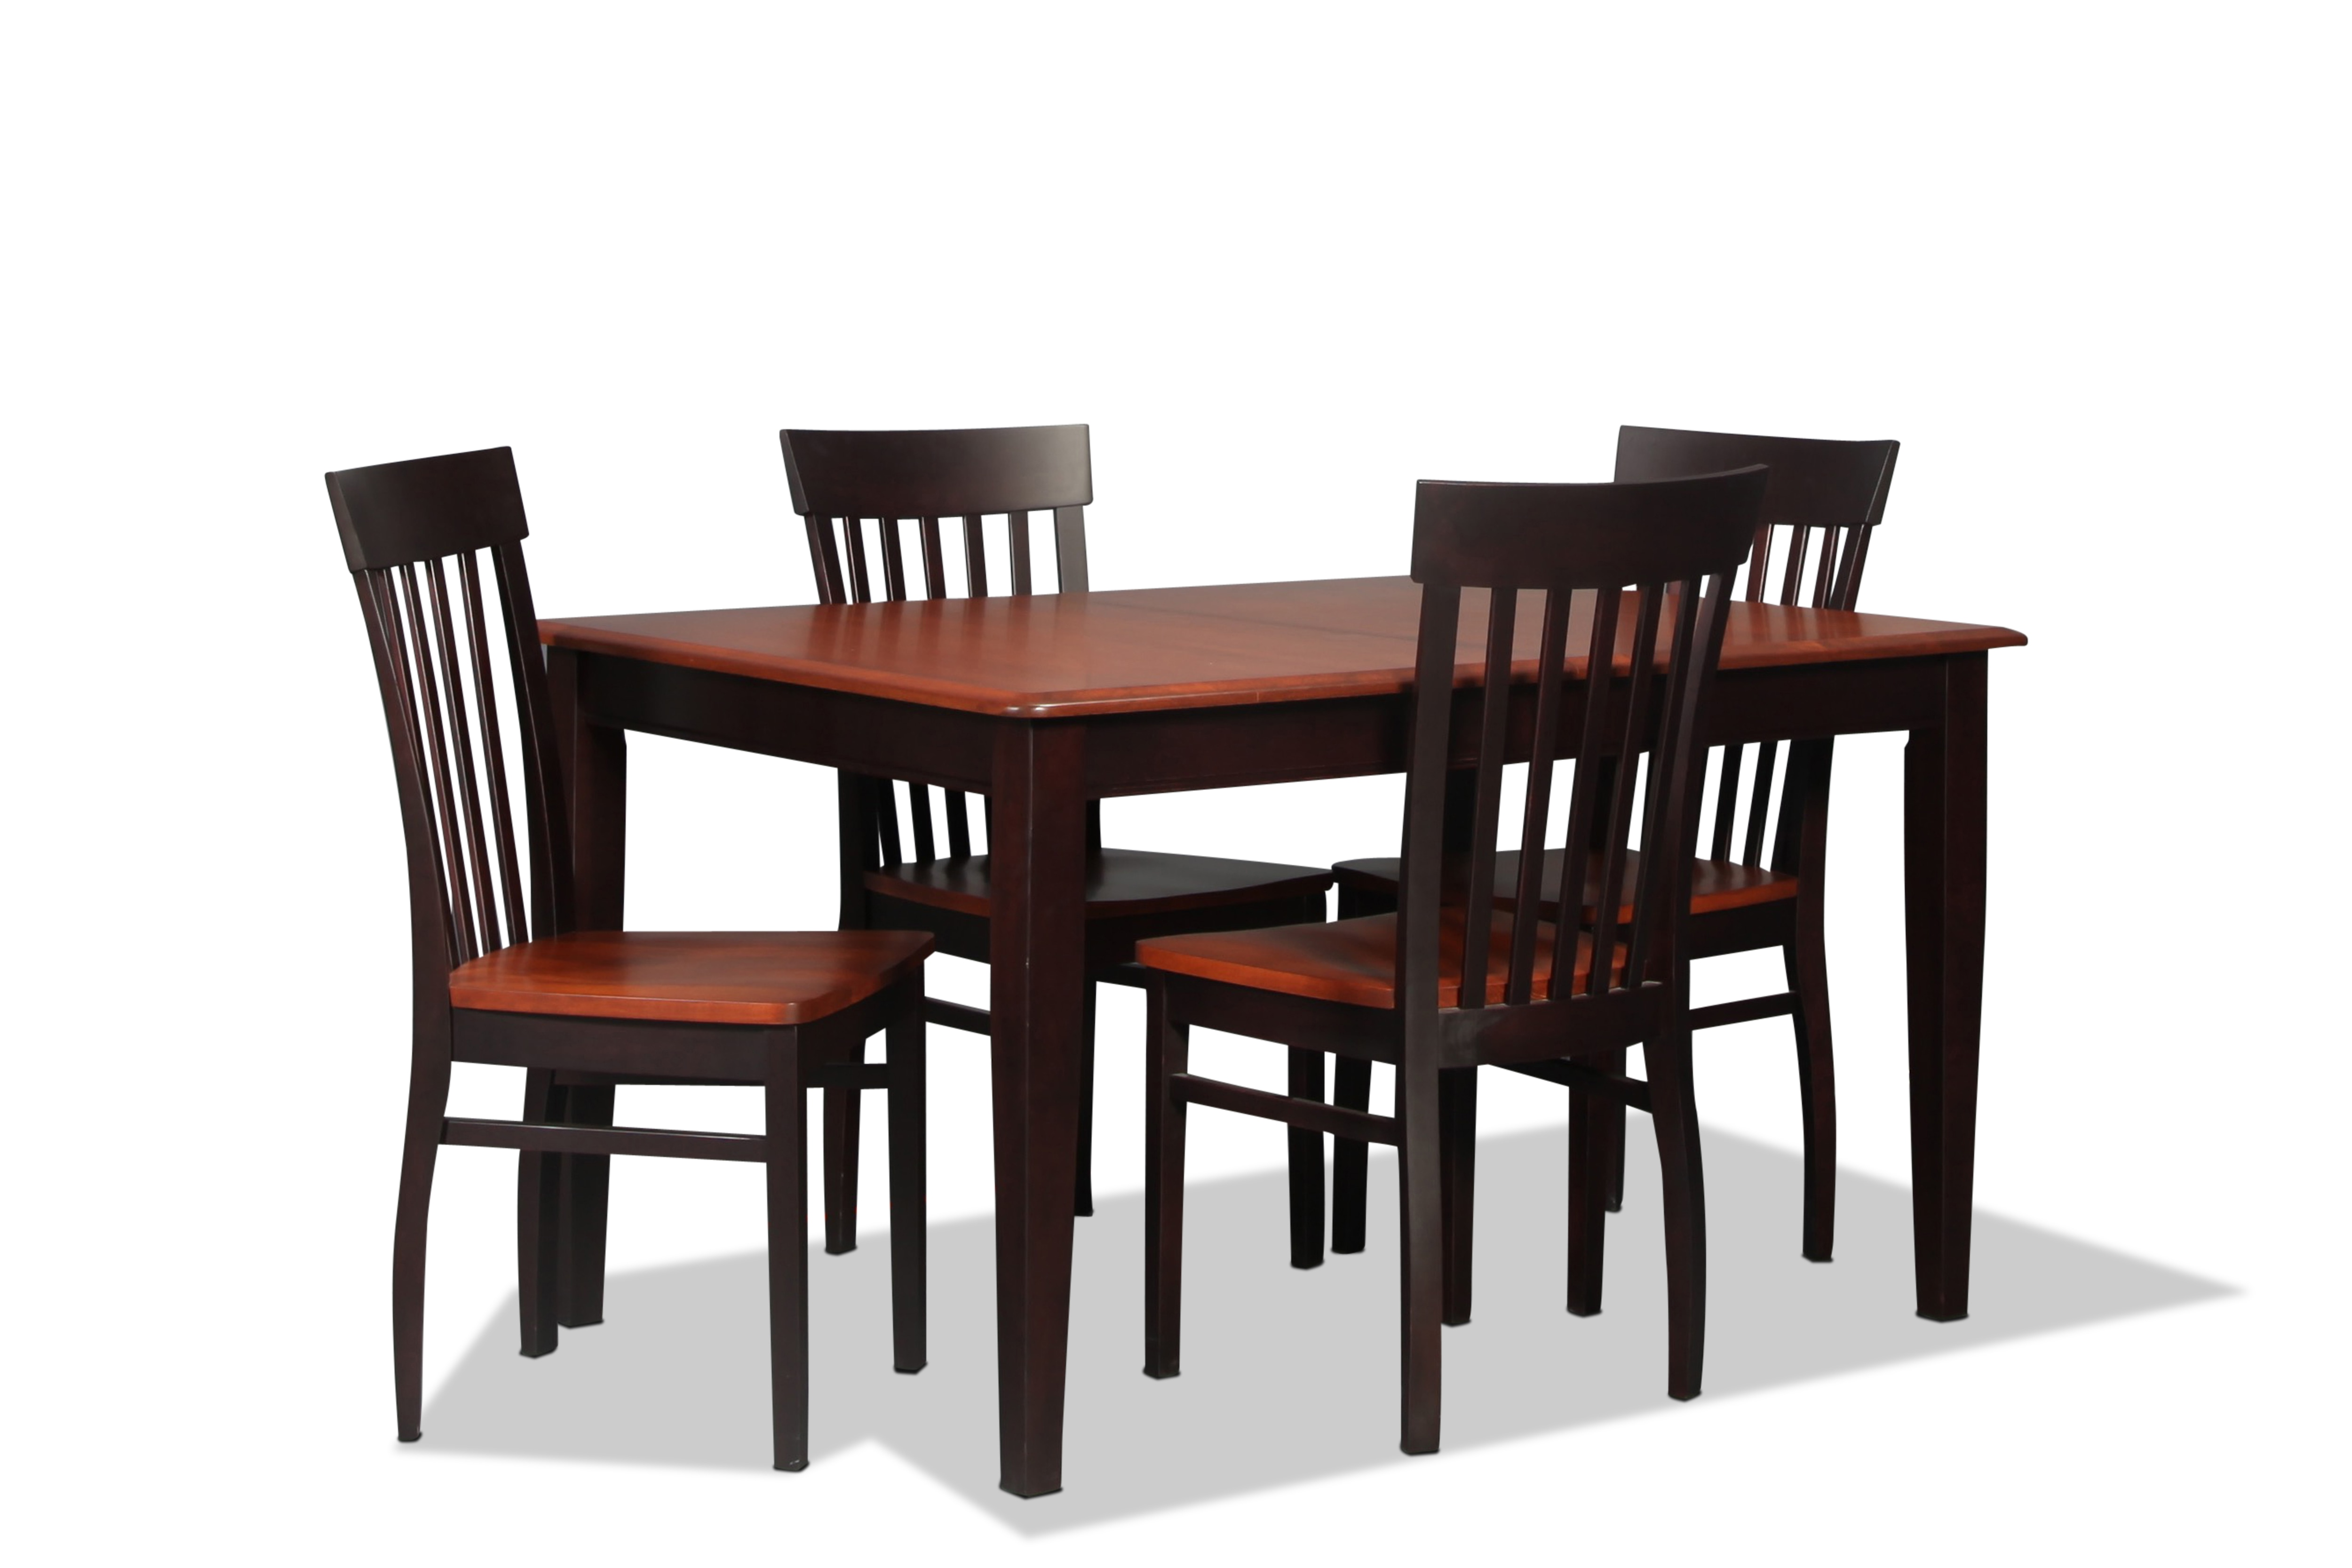 Anniversary Table and 4 Side Chairs - Merlot